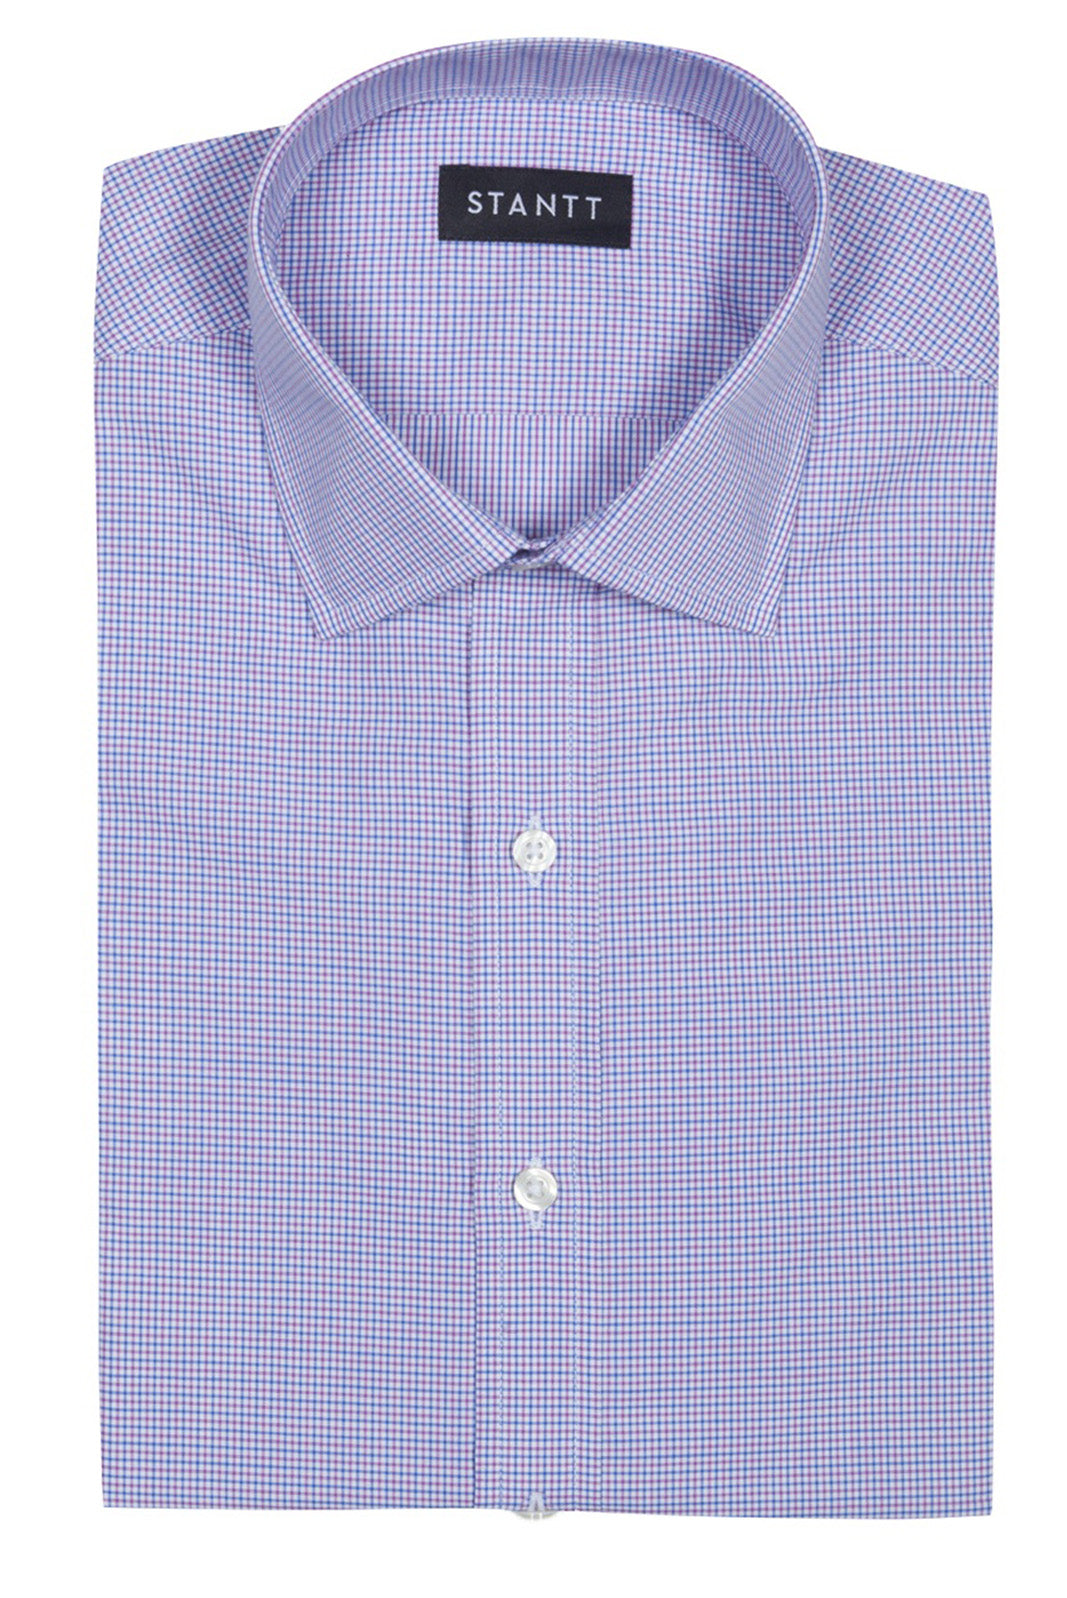 Purple and Blue Mini Tattersall: Modified-Spread Collar, French Cuff